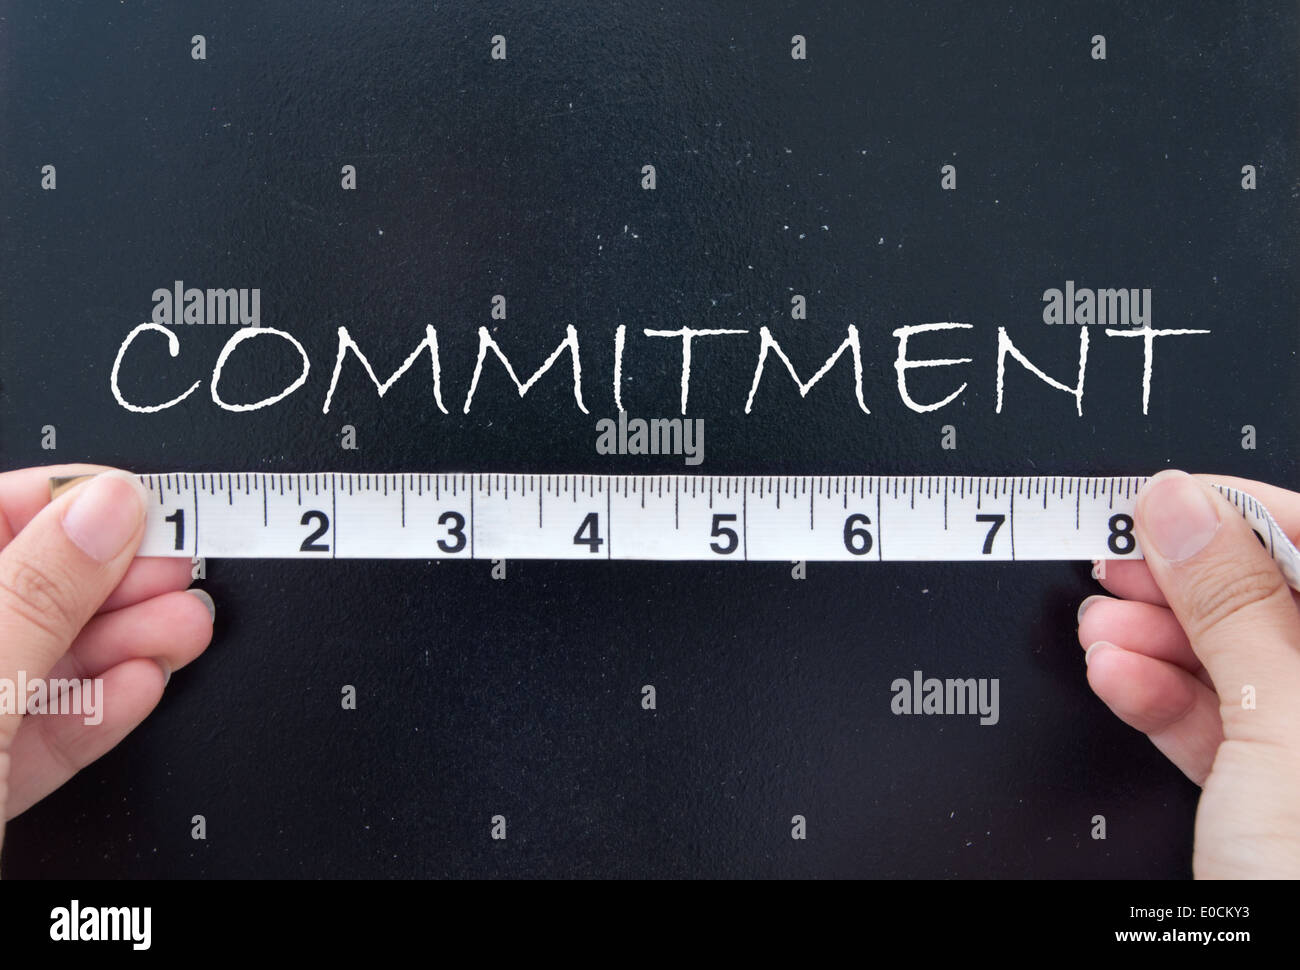 Measuring commitment - Stock Image